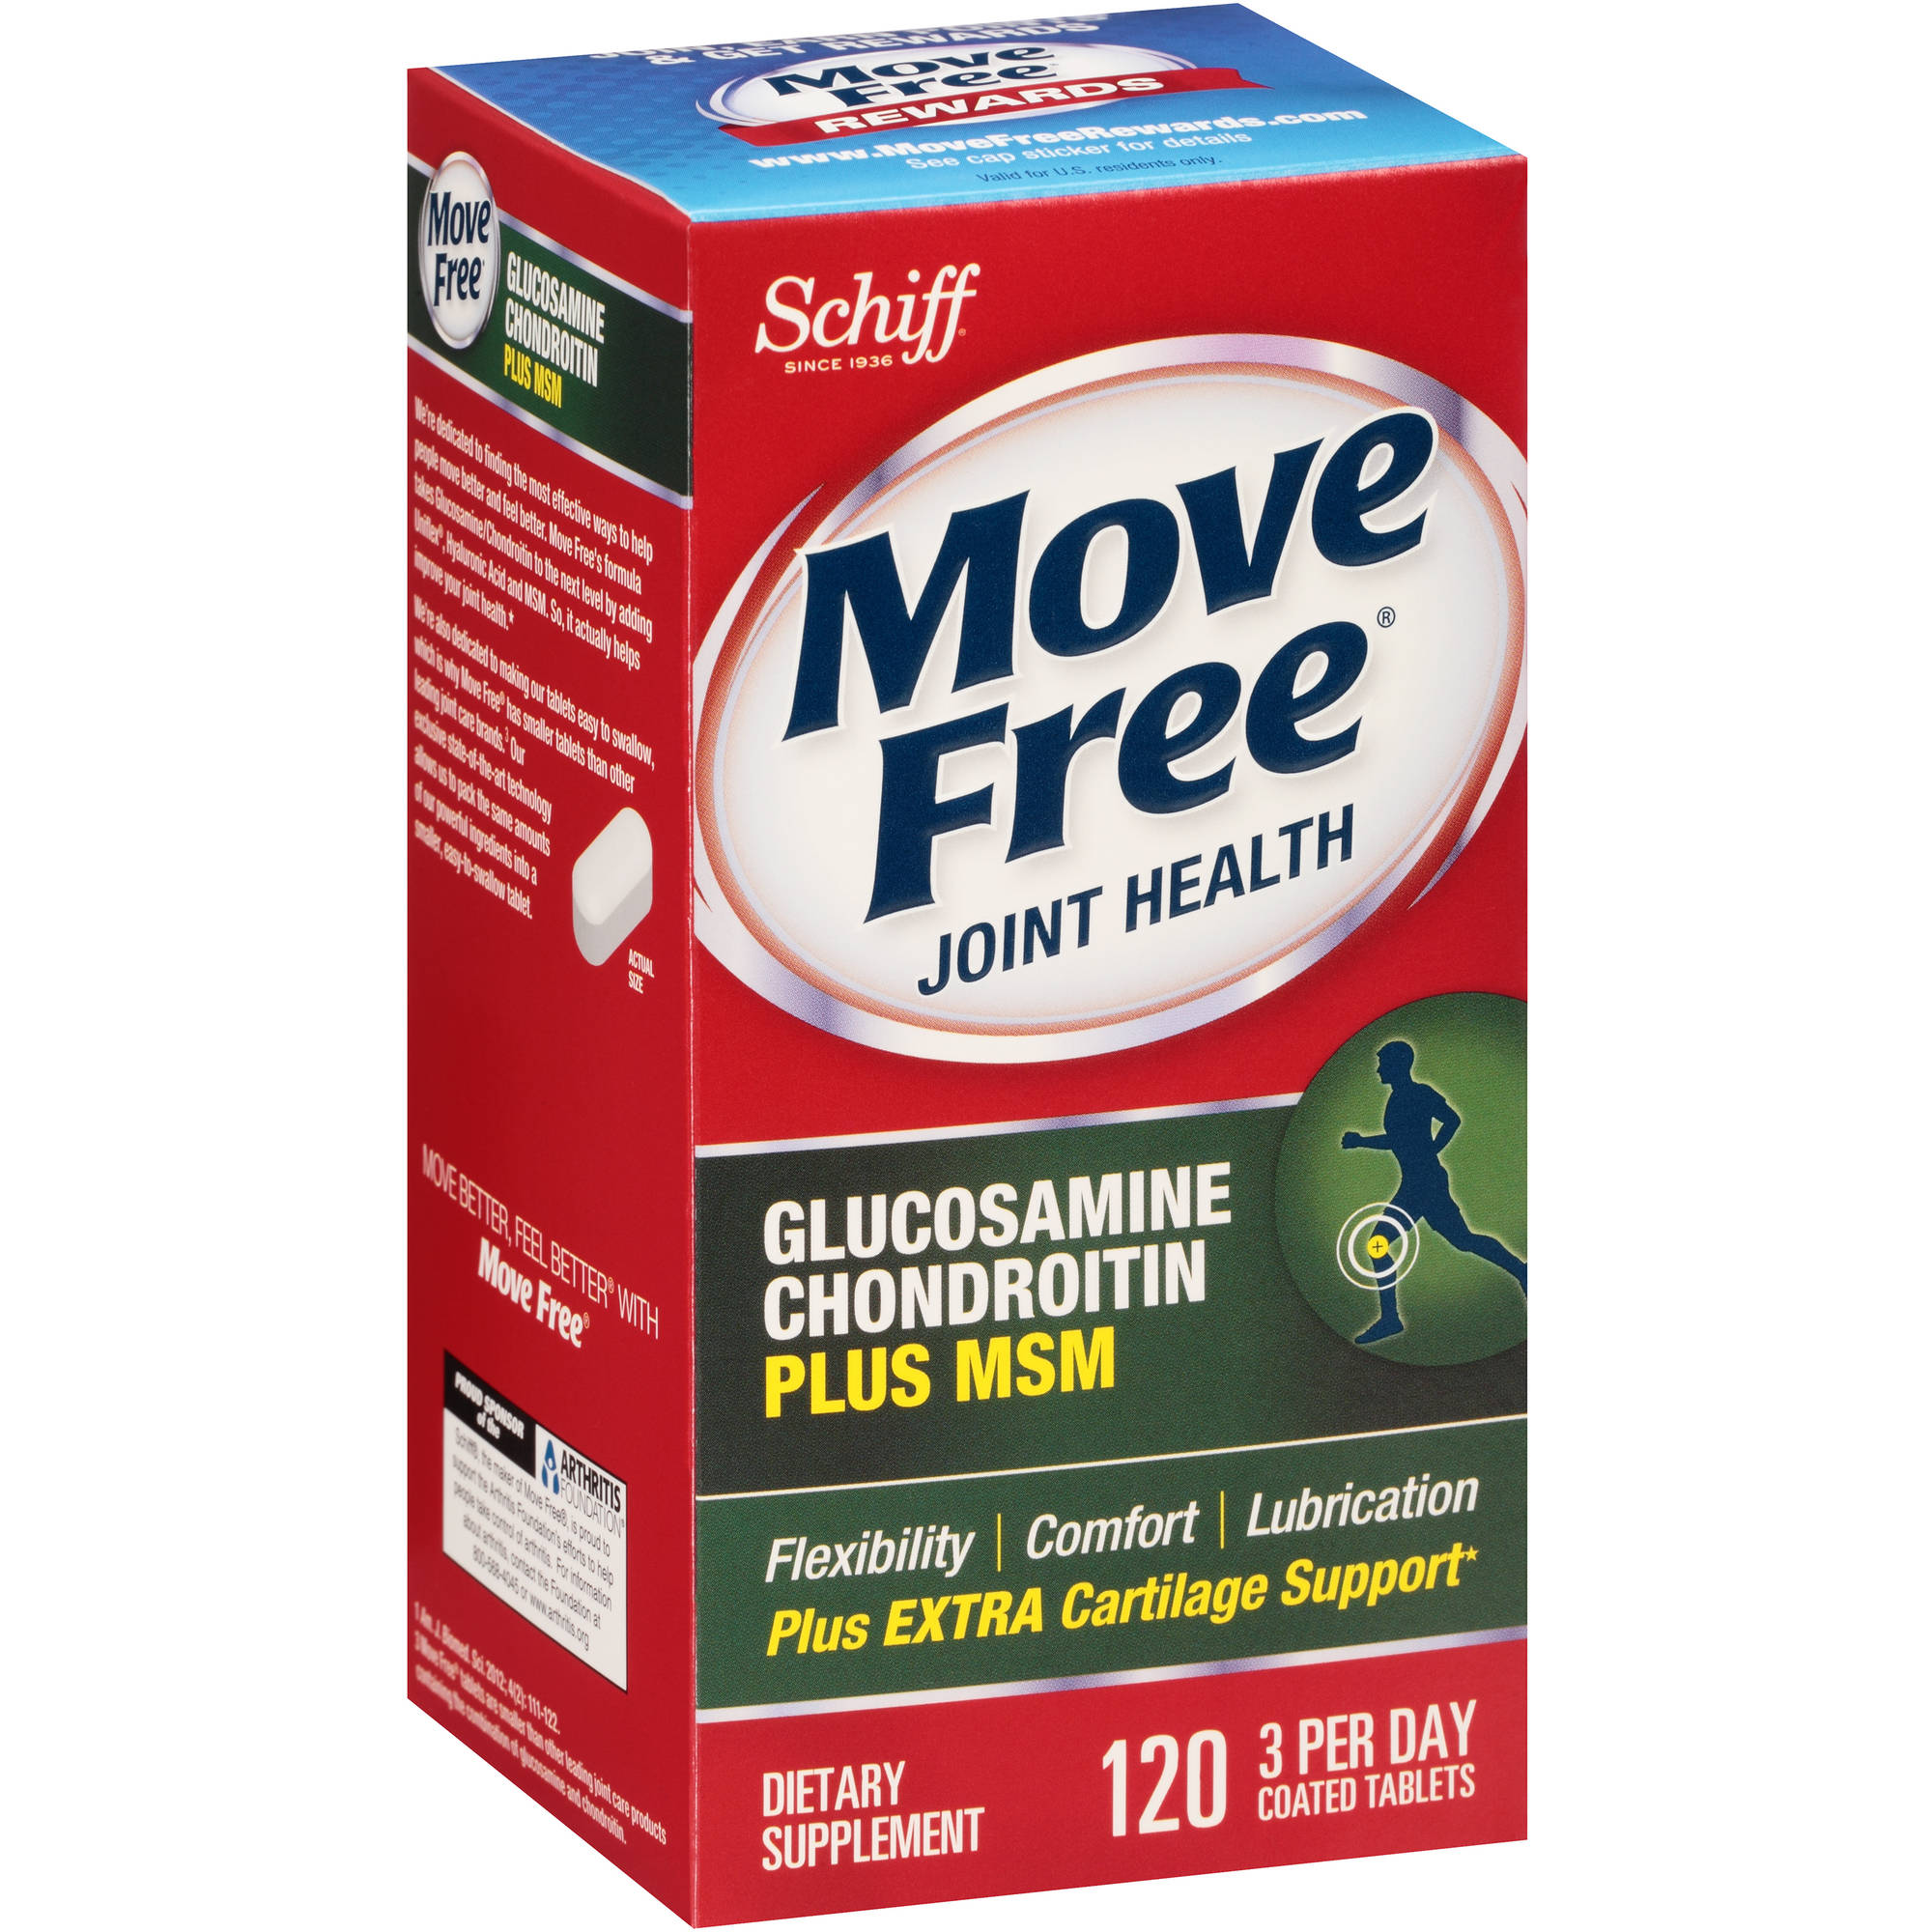 Schiff Move Free Glucosamine Chondroitin Plus MSM Joint Health Dietary Supplement Coated Tablets, 120 count